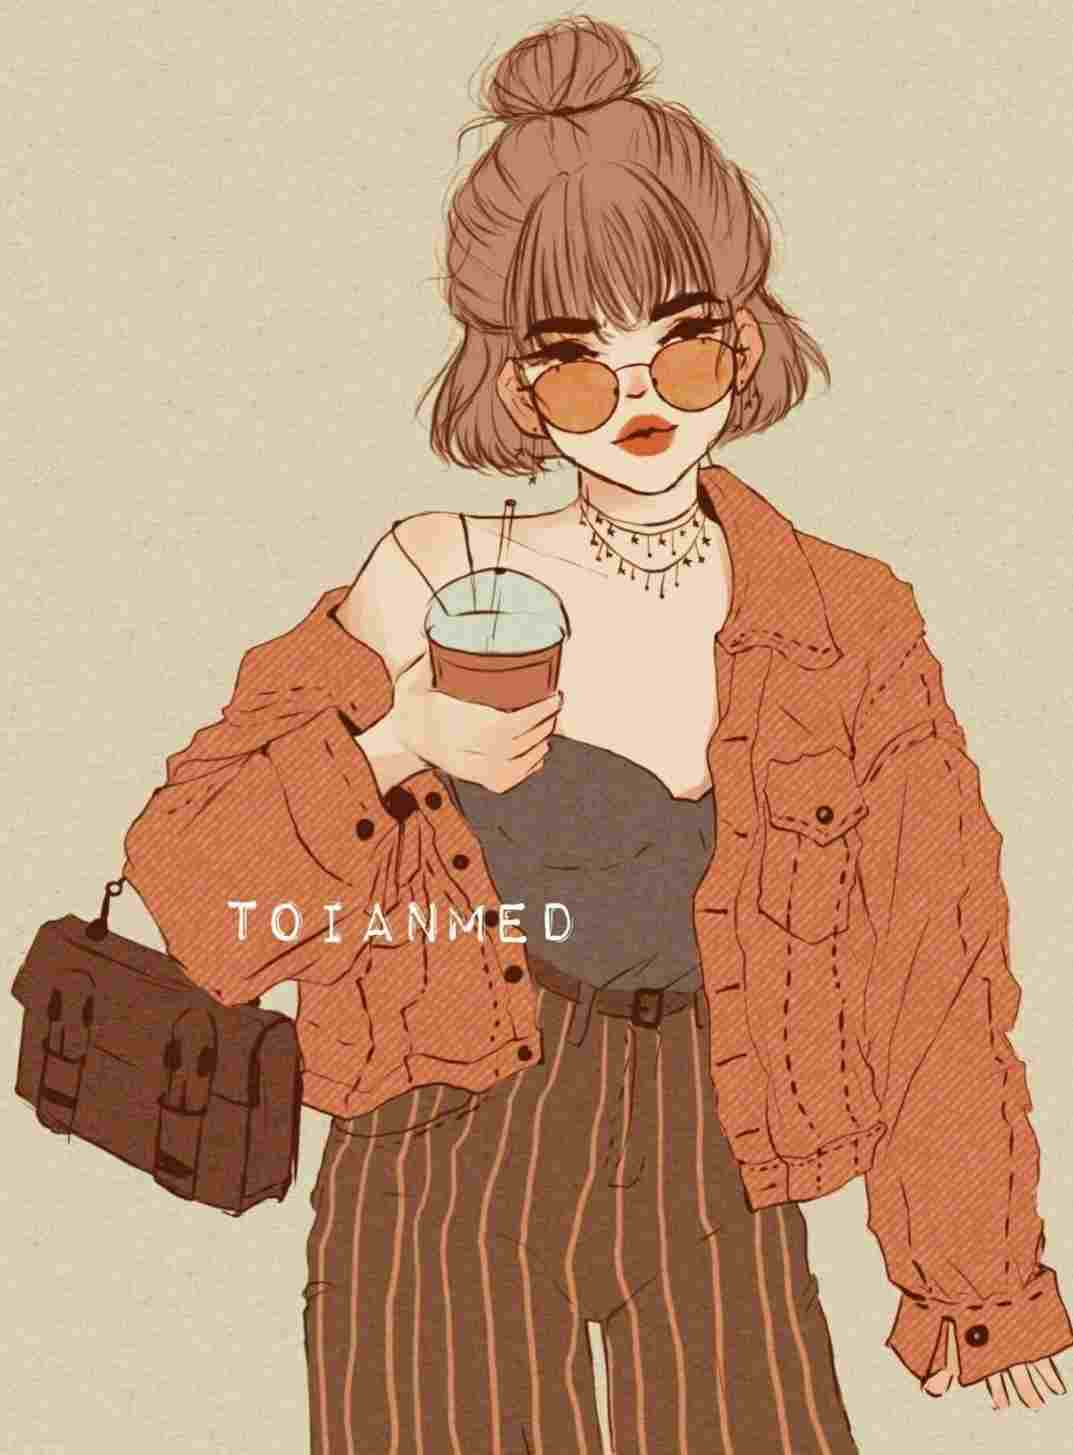 Cute Aesthetic Drawings : aesthetic, drawings, Aesthetic, Drawings, Wallpapers, Wallpaper